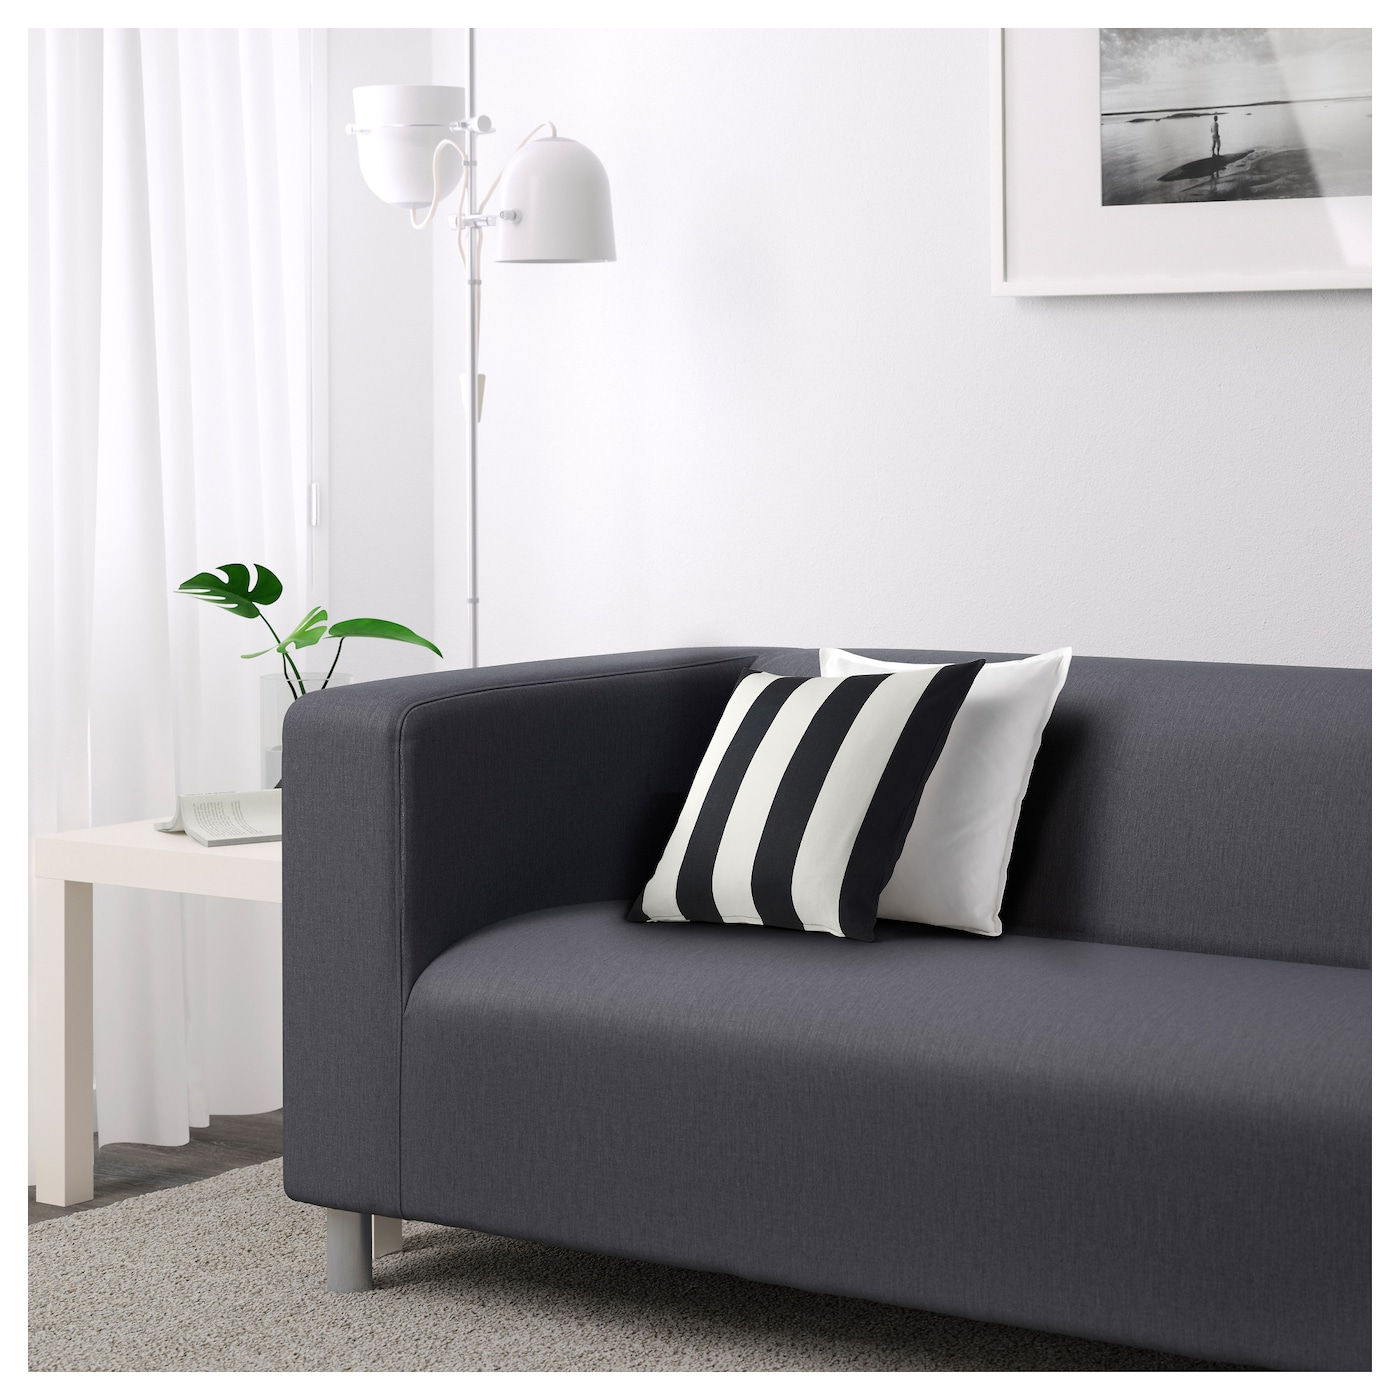 klippan two seat sofa flackarp grey ikea. Black Bedroom Furniture Sets. Home Design Ideas